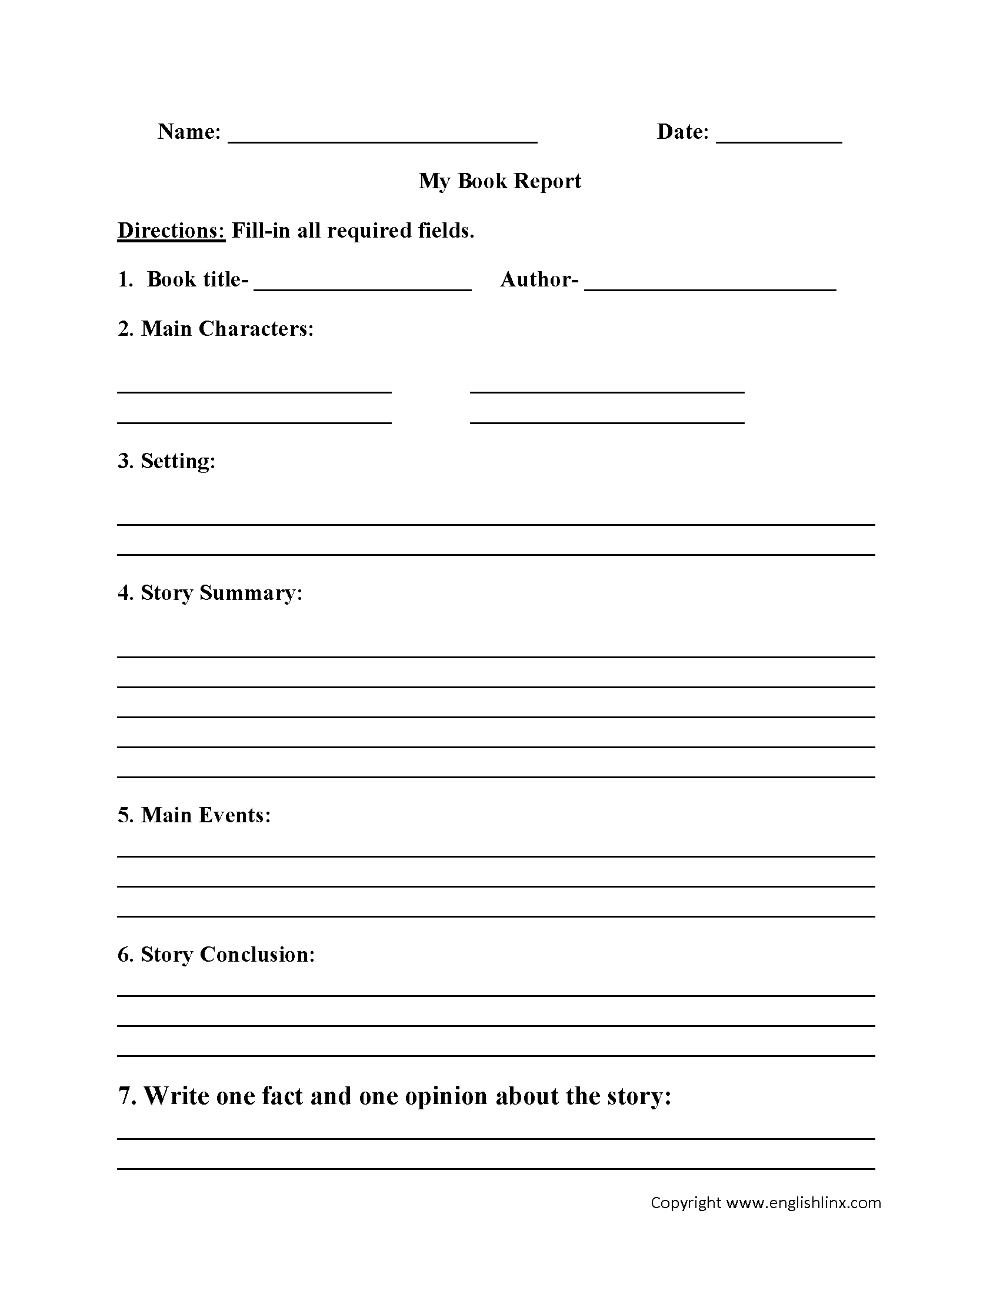 hight resolution of Englishlinx Book Report Worksheets Throughout Book Report Template 6Th Grade  - 10+ Professiona…   Book report templates